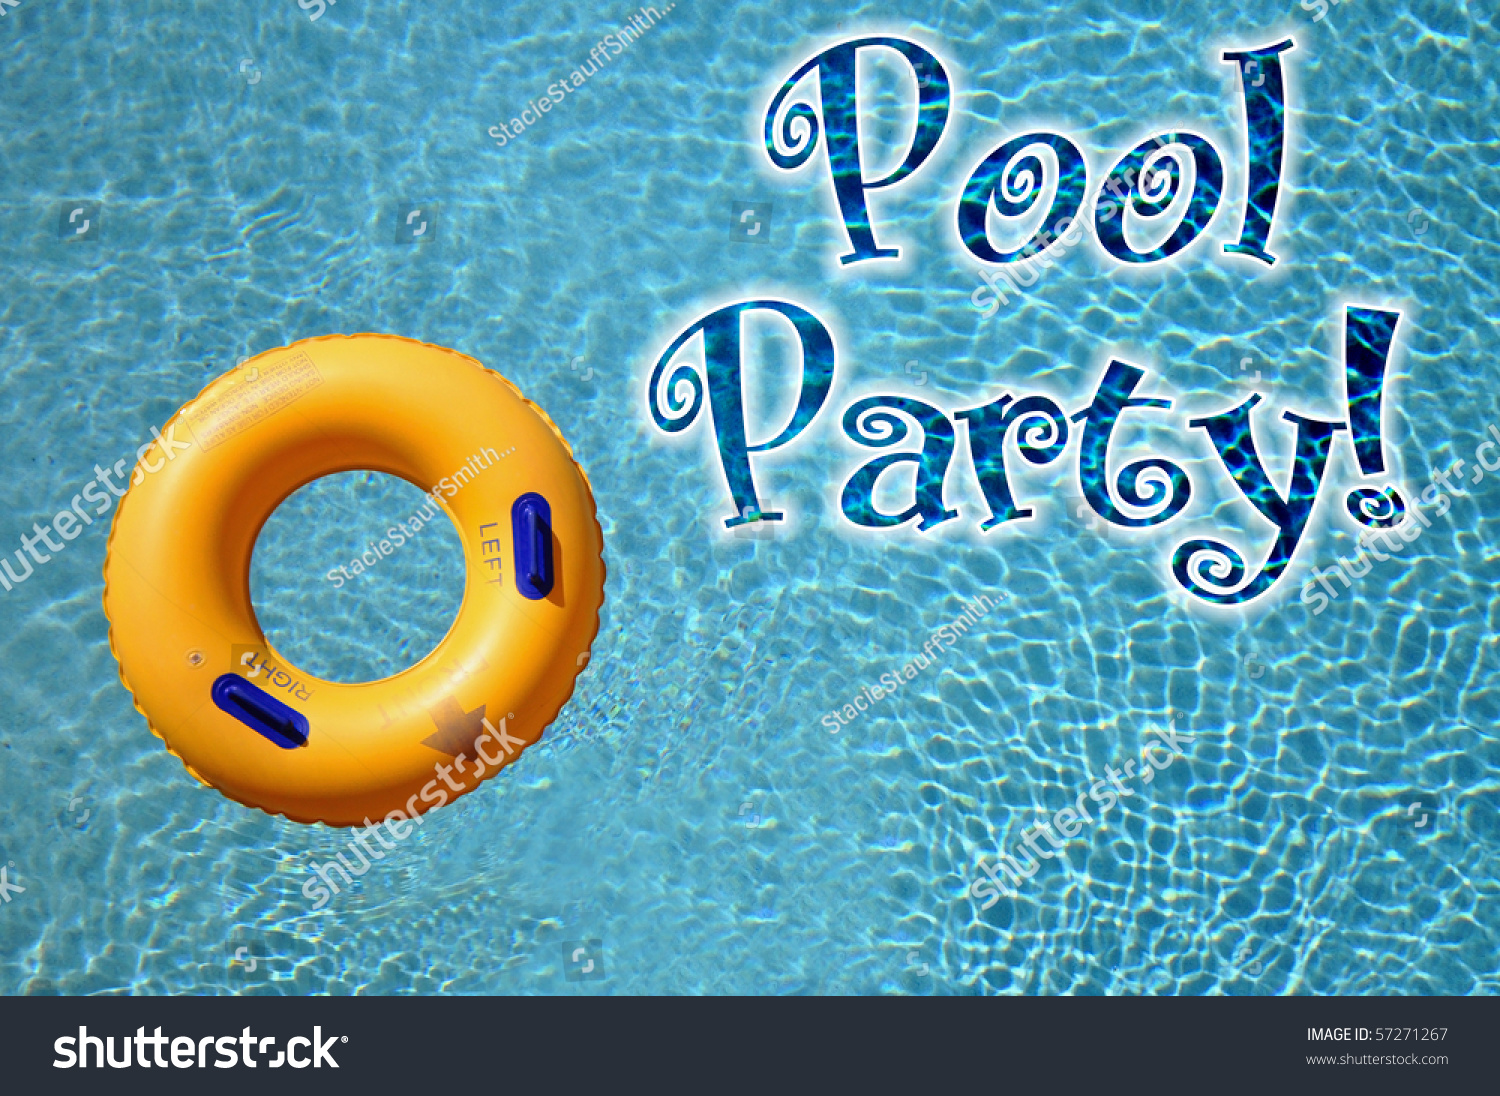 Adult Pool Party Invitations for great invitation layout